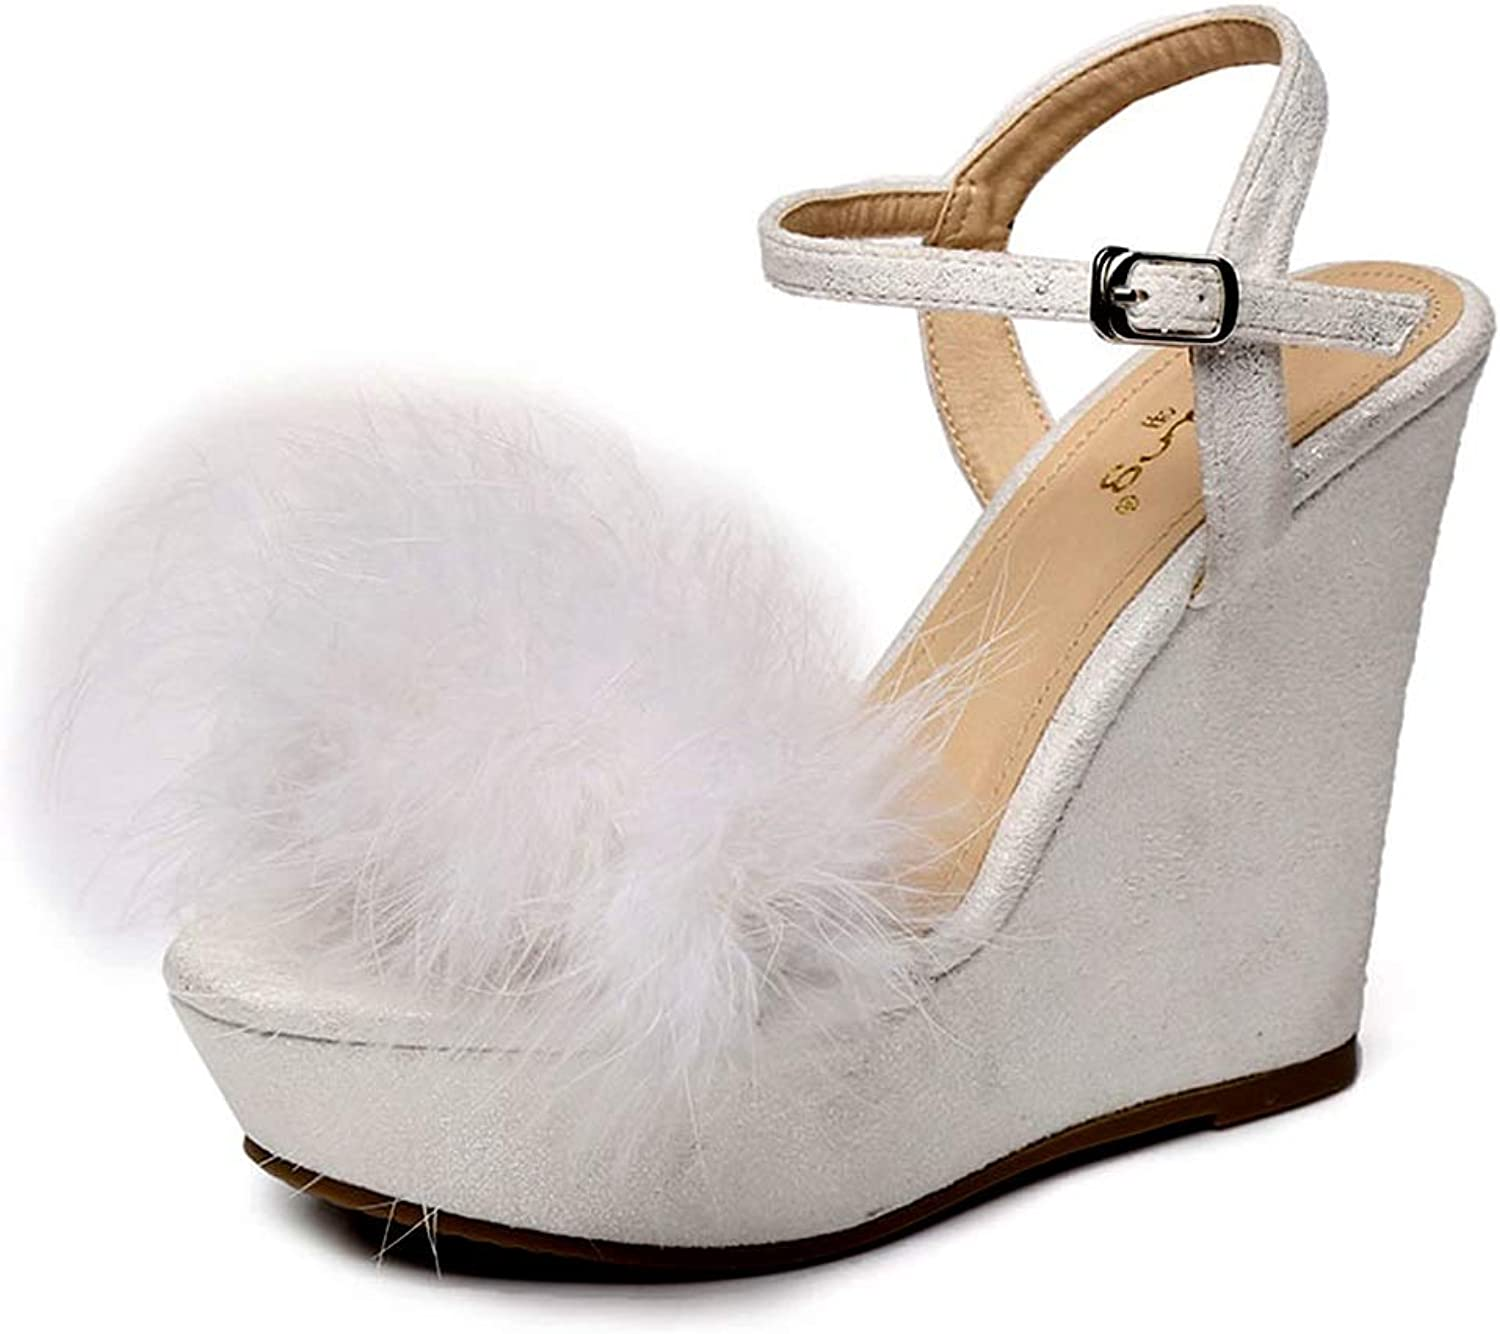 High Heels Fashion Ladies Wedge Sandals Personality High Platform Sandals High Heels Summer 12Cm Casual High Heels Personalized Girl Platform shoes Wild Clothes (color   White, Size   37)